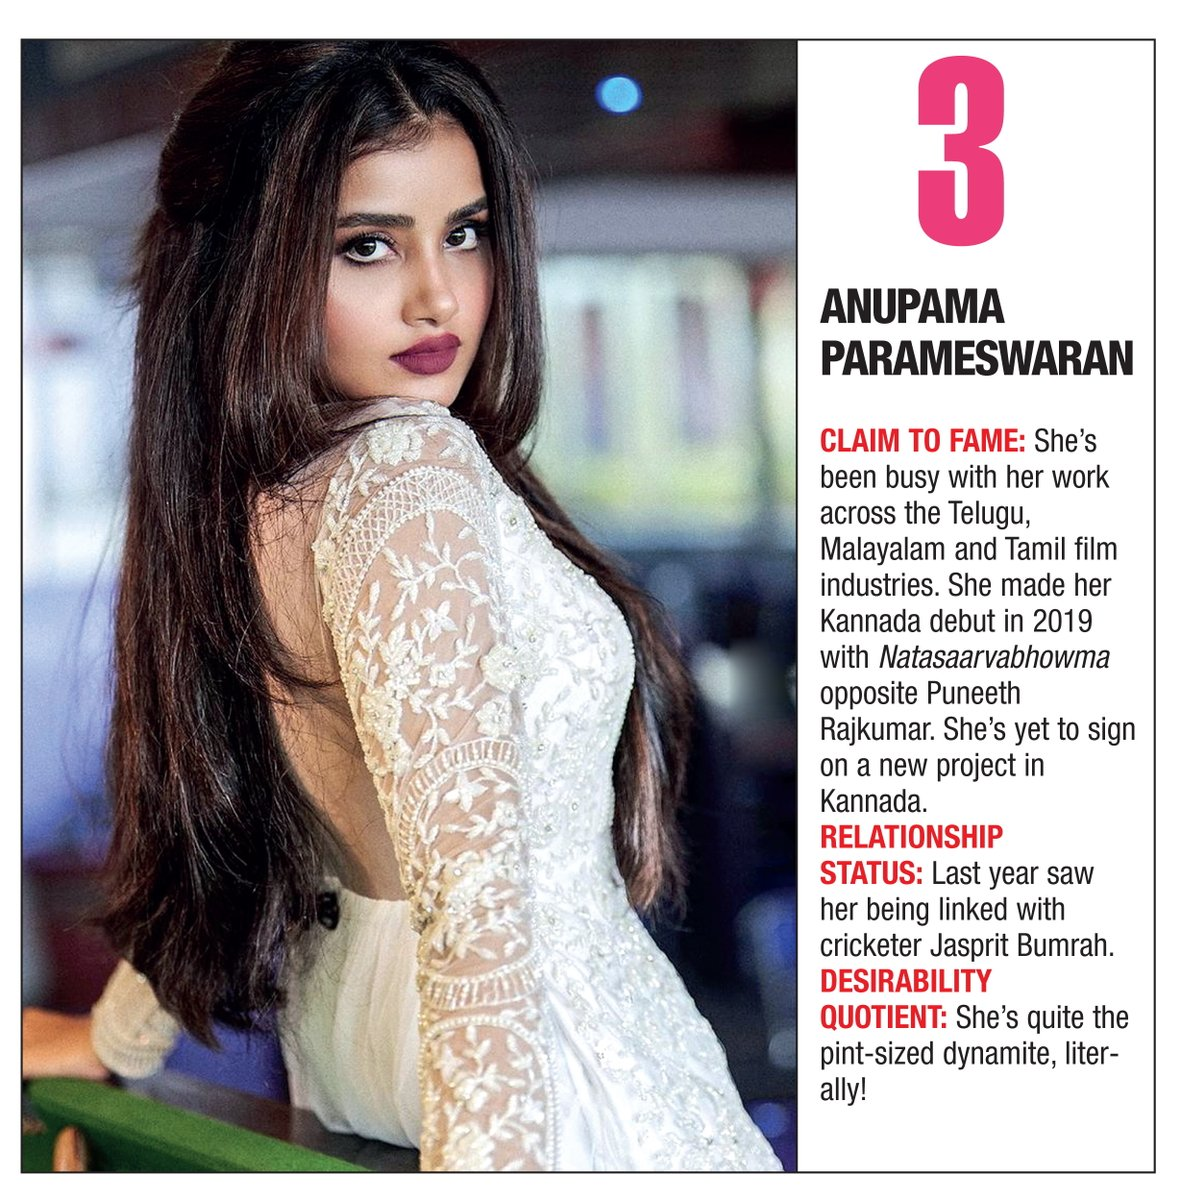 .@anupamahere made her way into the hearts of Kannada audiences with her debut in 2019 with Natasaarvabhowma, and has clinched the third spot on our list! #BangaloreTimesMostDesirable #BangaloreTimesMostDesirableWomen2019 #AnupamaParameswaran #BTMostDesirable2019